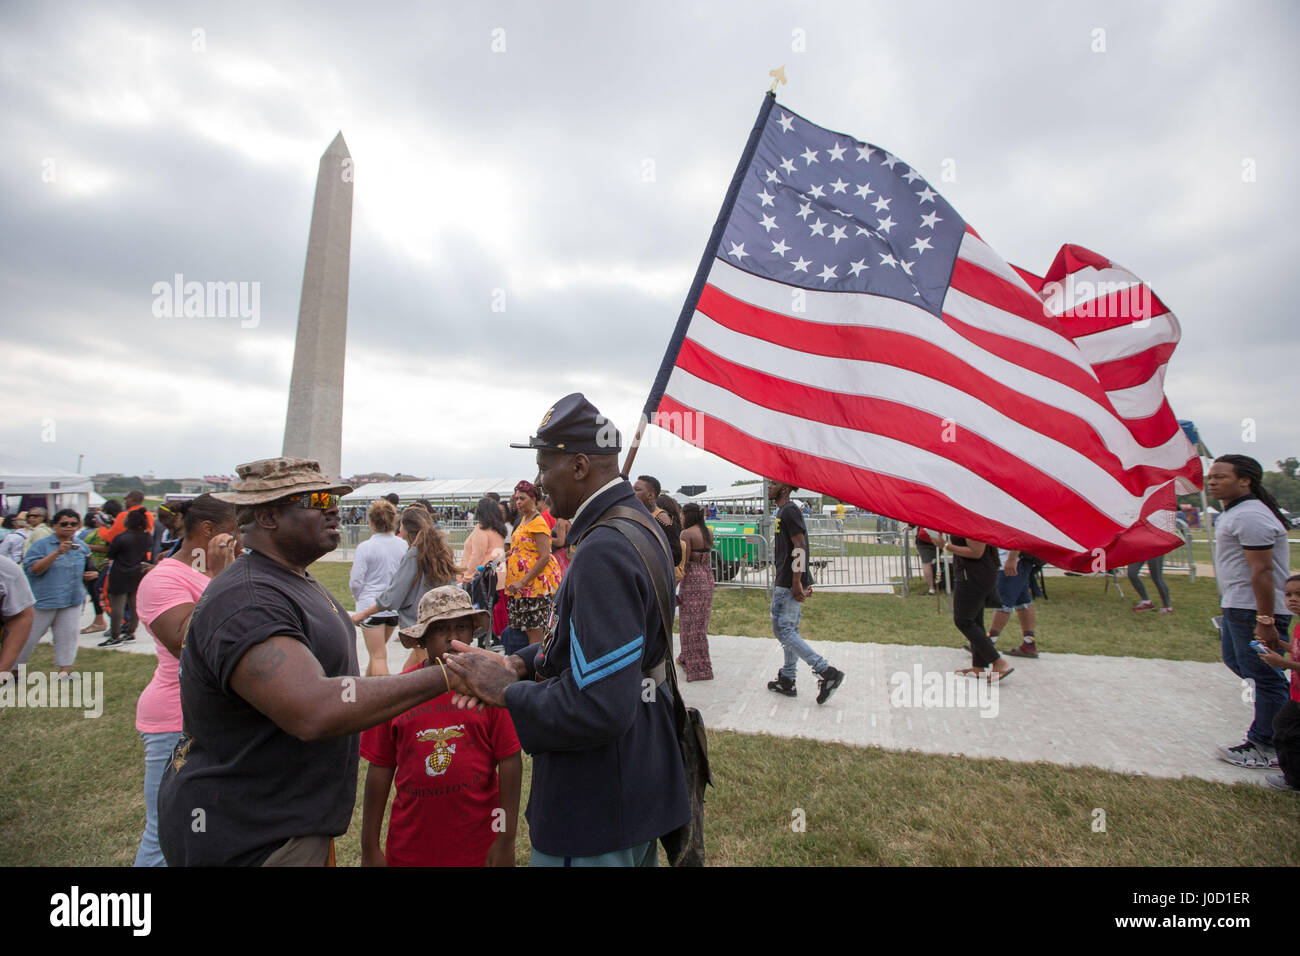 Washington, District, USA. 24th Sep, 2016. Cpl. ALVERT EL of the 3rd Regiment Infantry U.S. Army from Philadelphia, - Stock Image